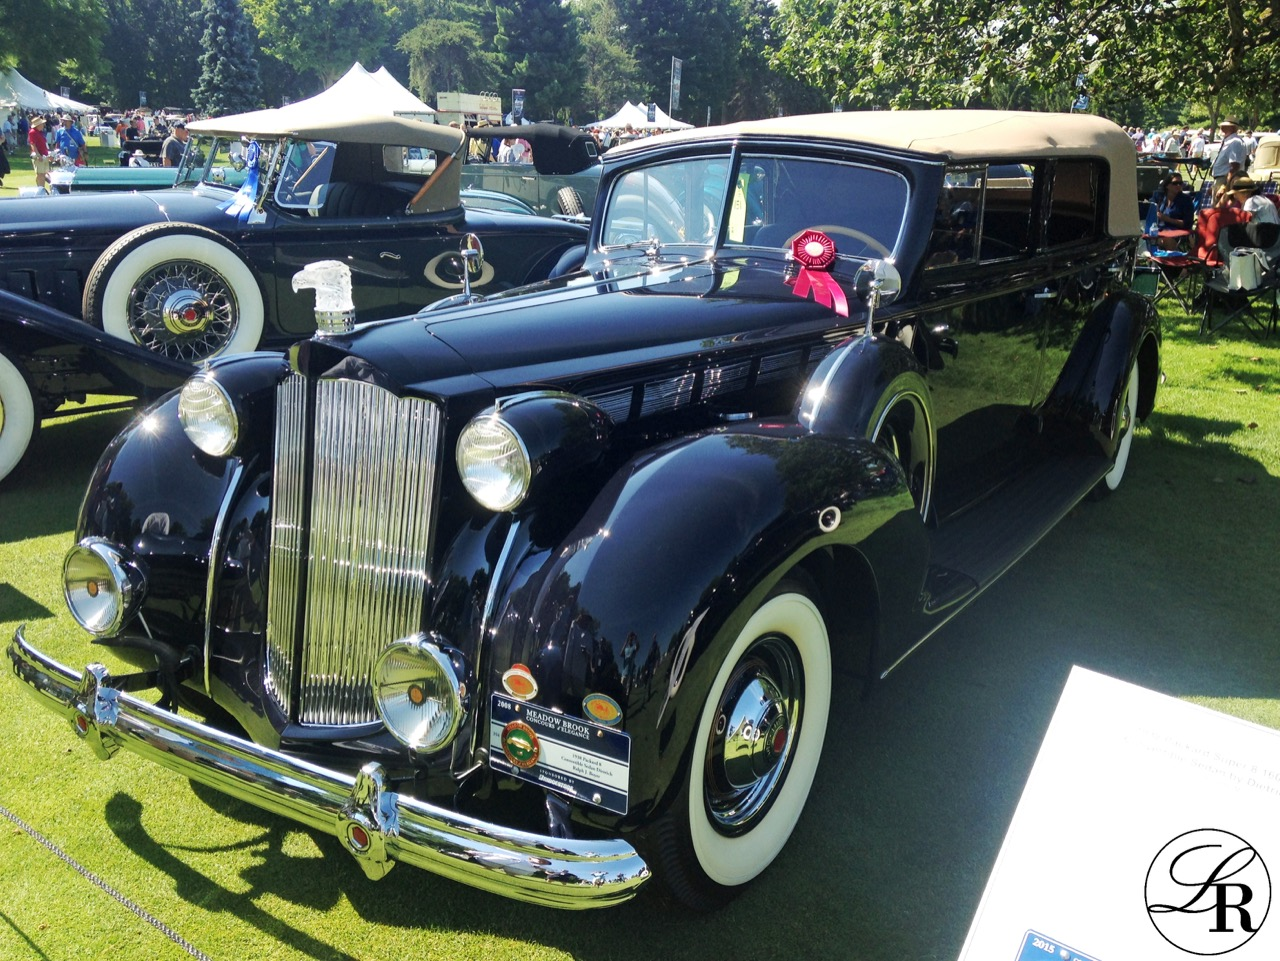 This LaVine Restorations restored 1938 Packard Model 1605 Four Door Convertible Sedan took a Class Award in the American Classic Open Class.